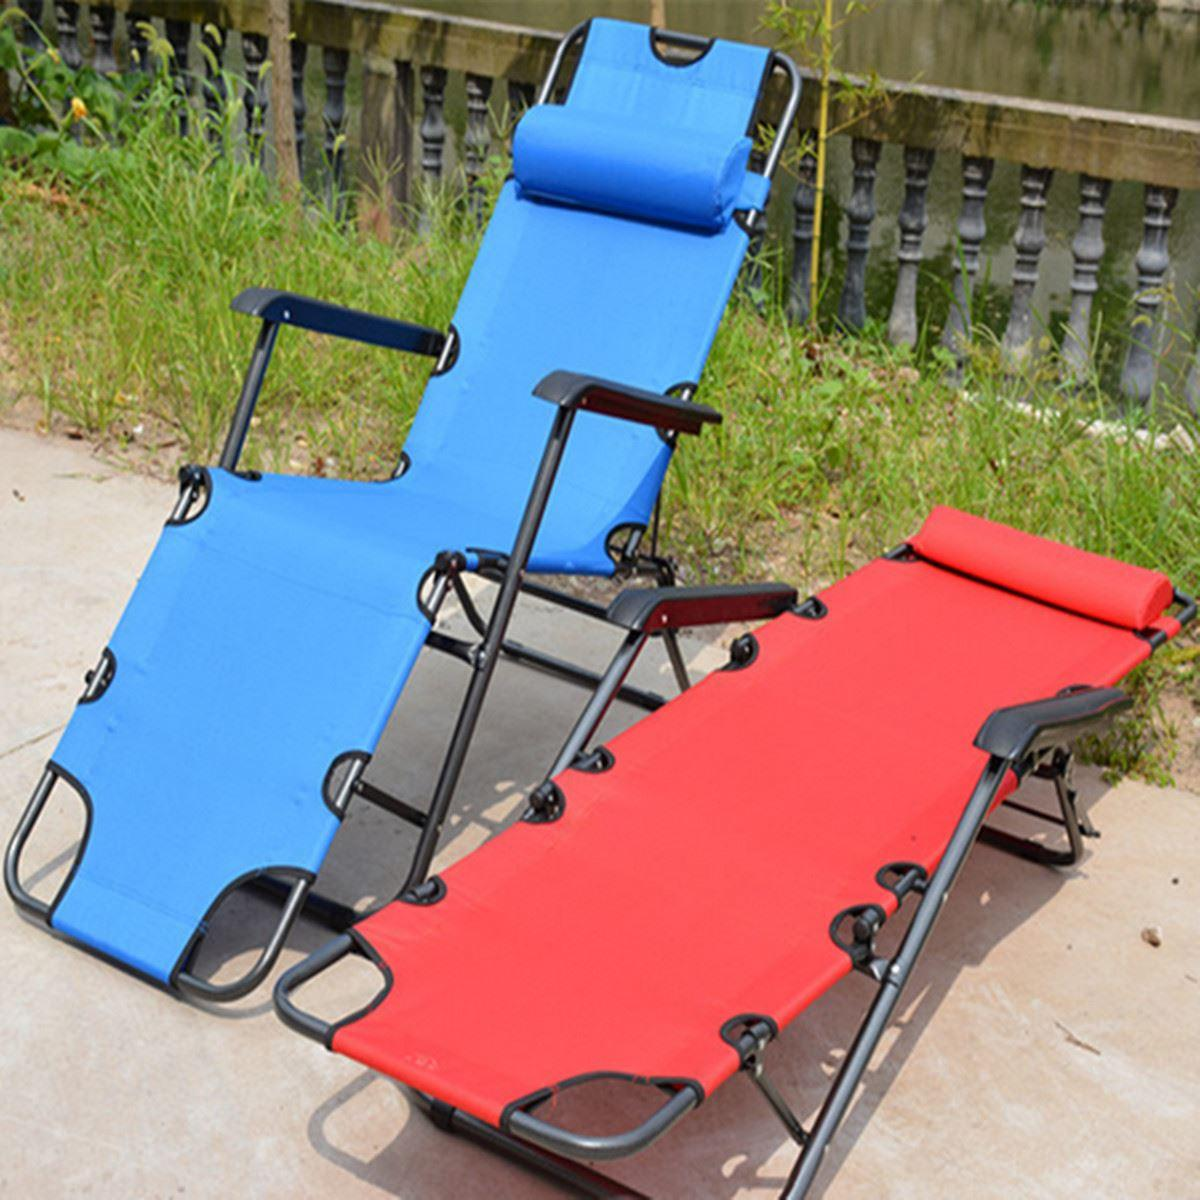 portable reclining chair barber parts brisbane 2019 folding outdoor deck camping sun lounger beach bed office napping chairs easy carry 178 61 30cm from lyh1125520 205 83 dhgate com